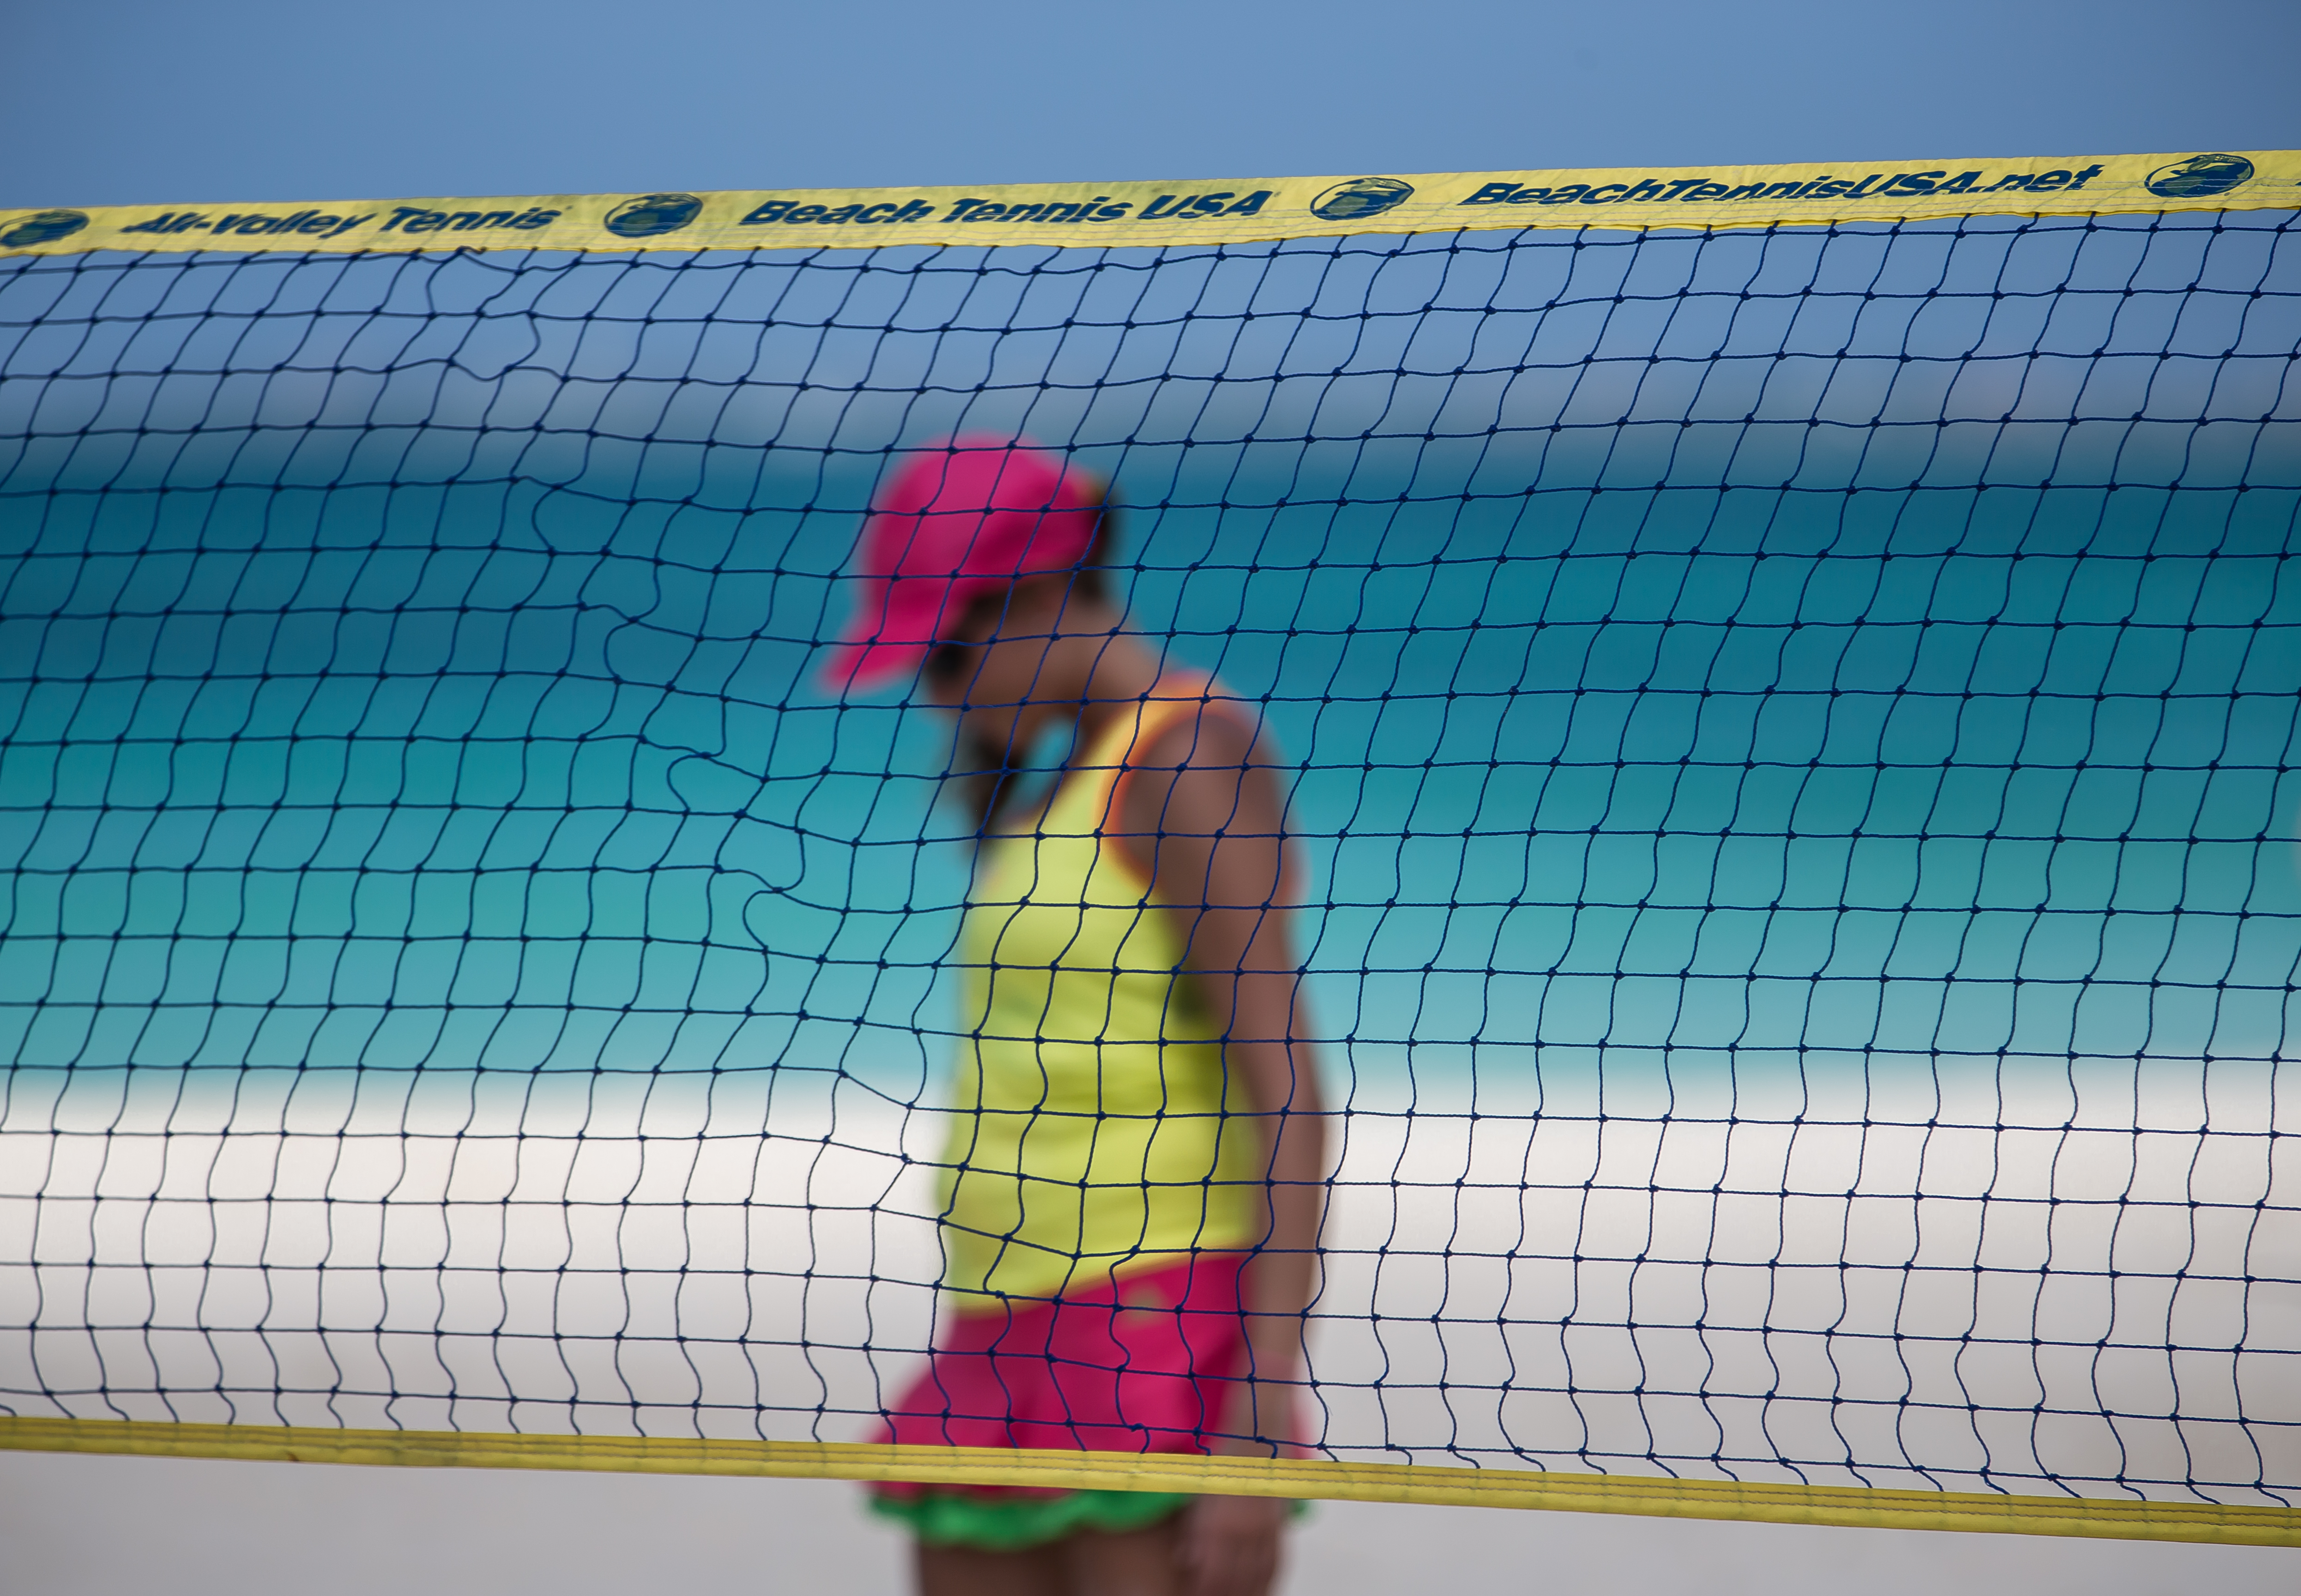 A73Q6569.jpg Beach Tennis in Aruba